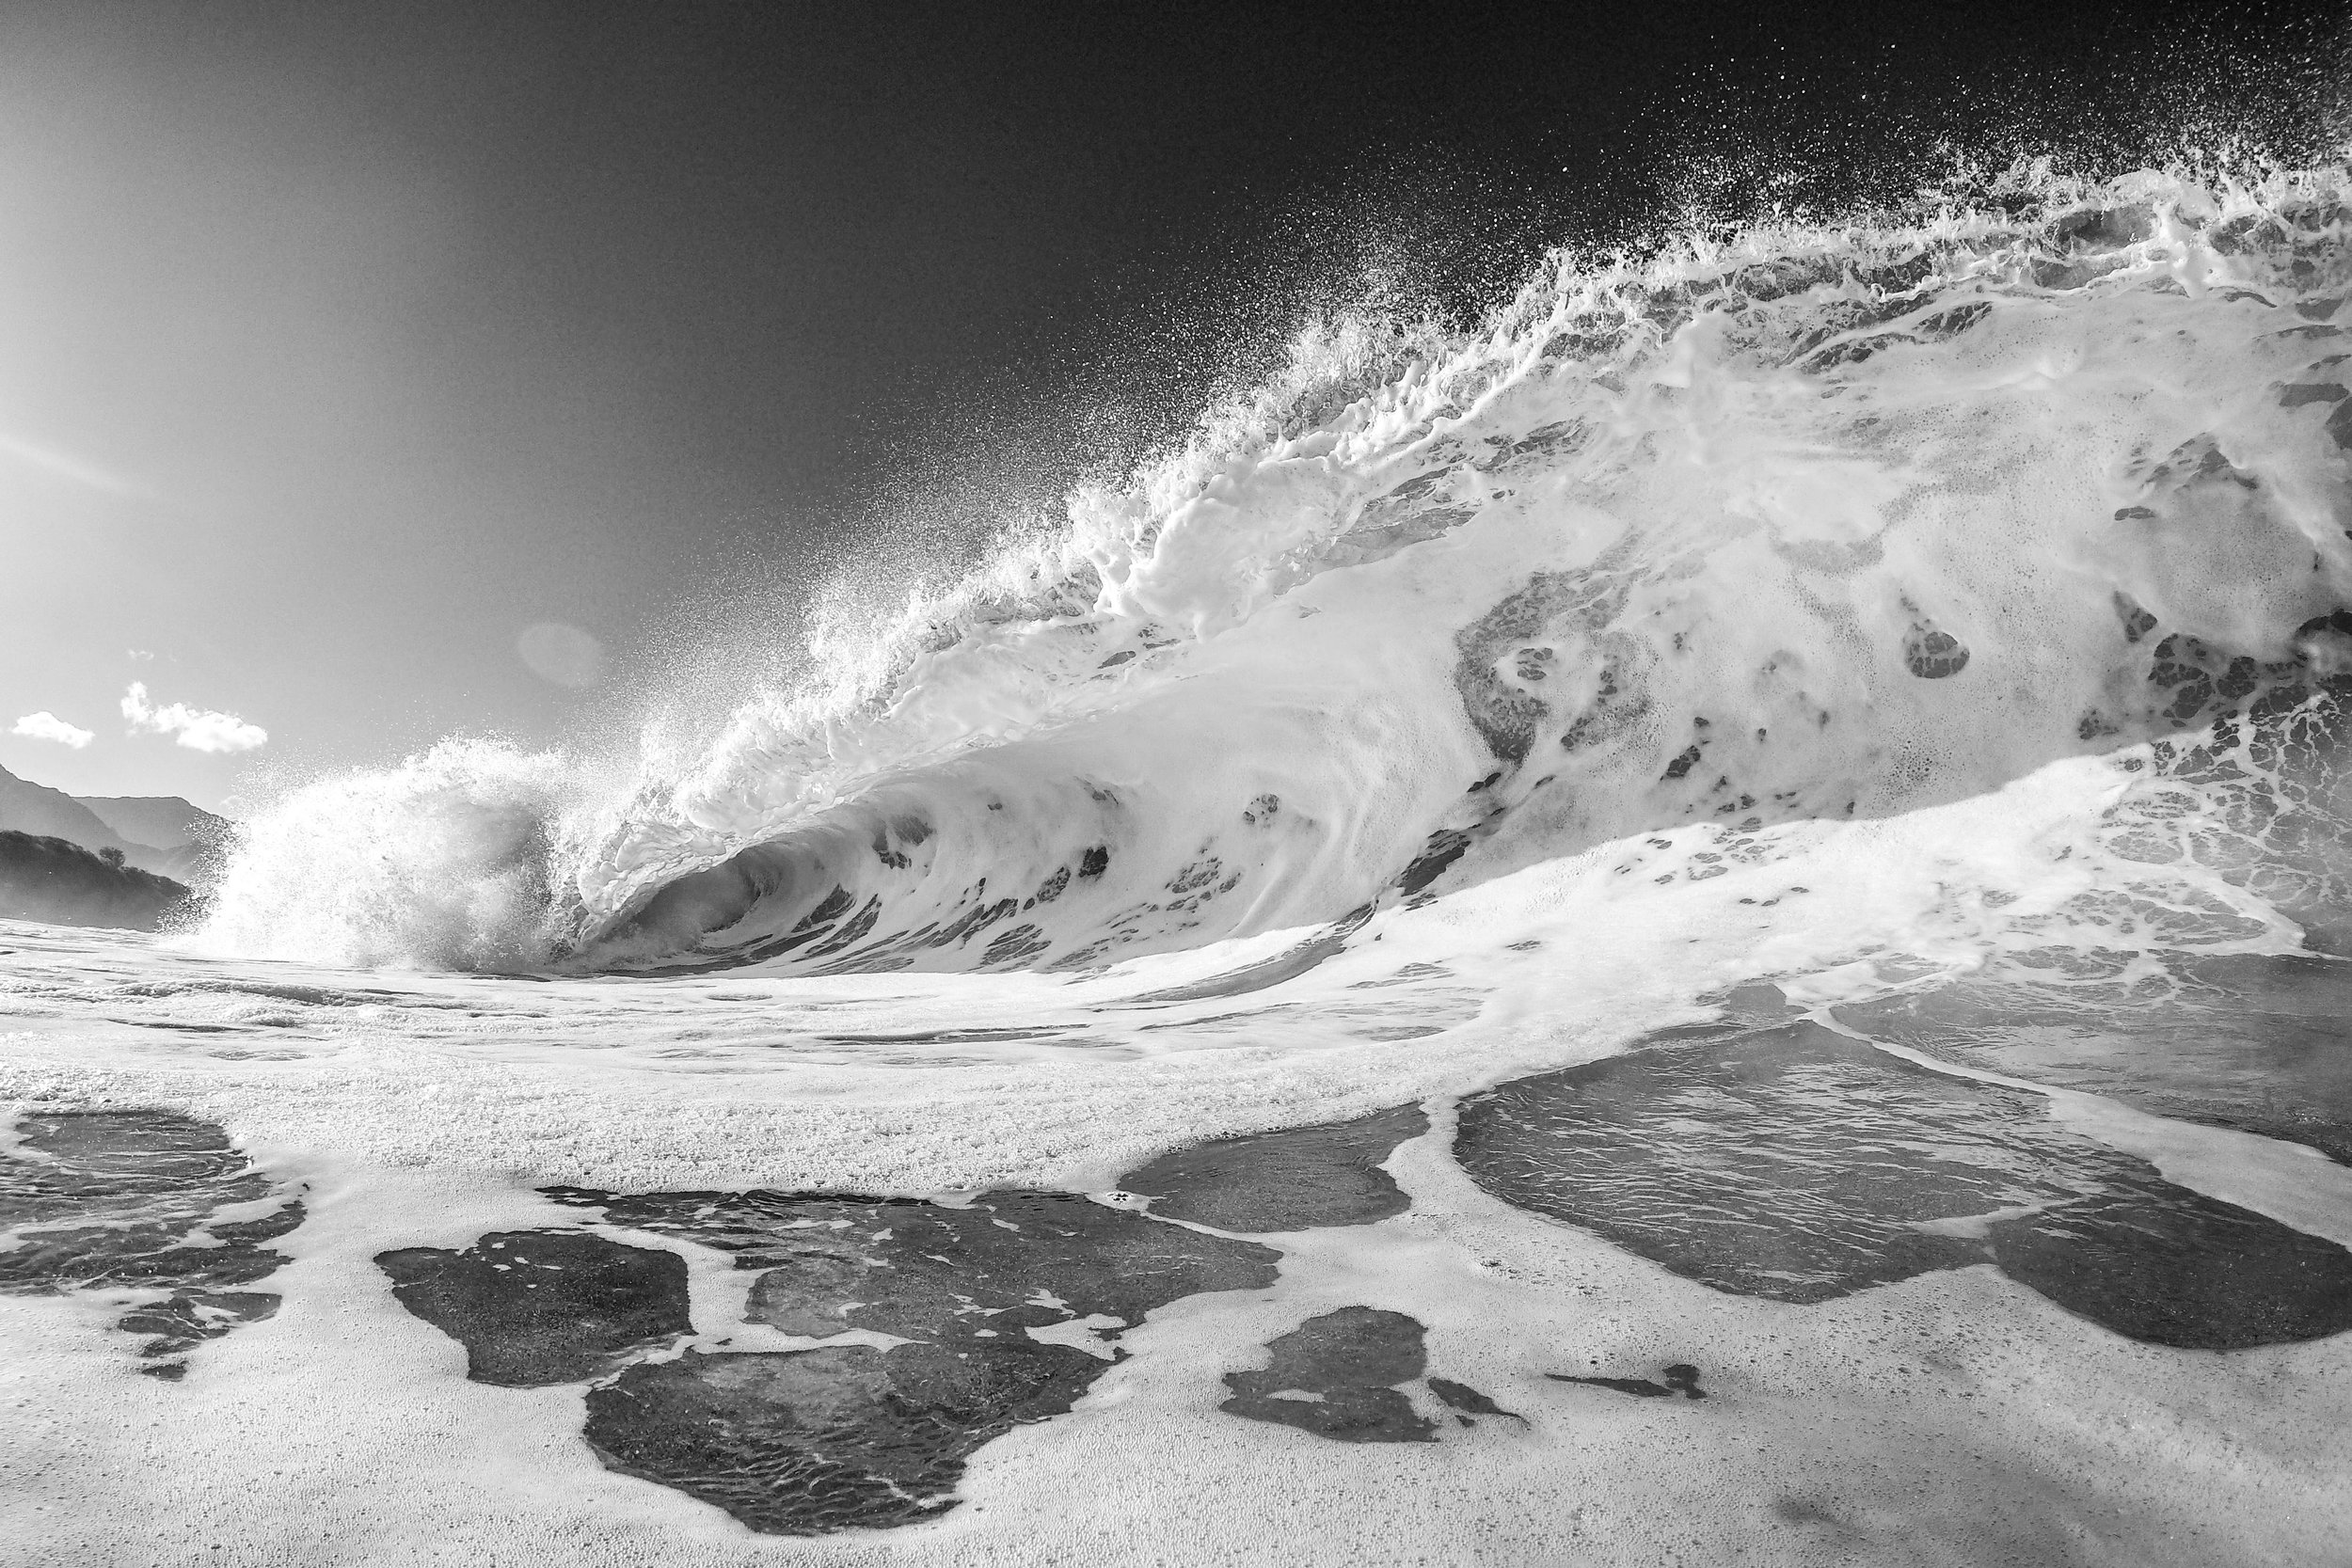 FROTH PIT